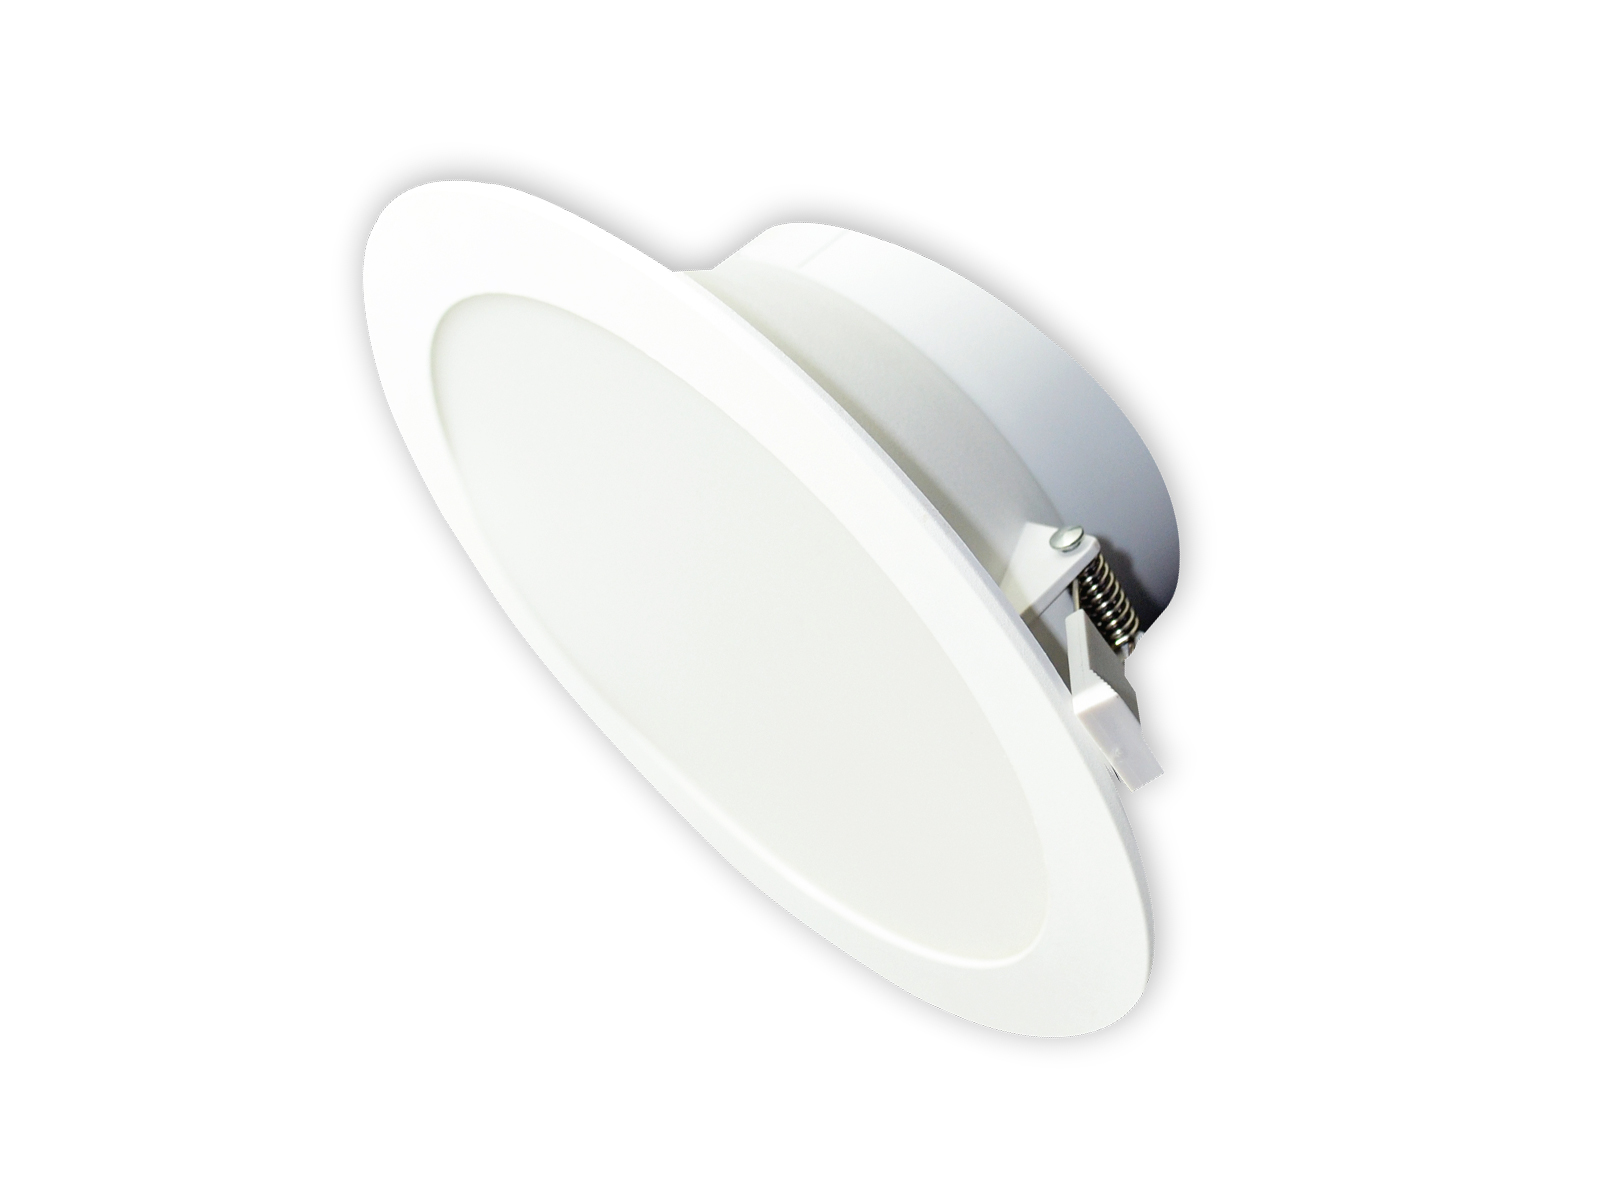 sunshine-20w-led-downlight-sembawang-lighting-house.jpg